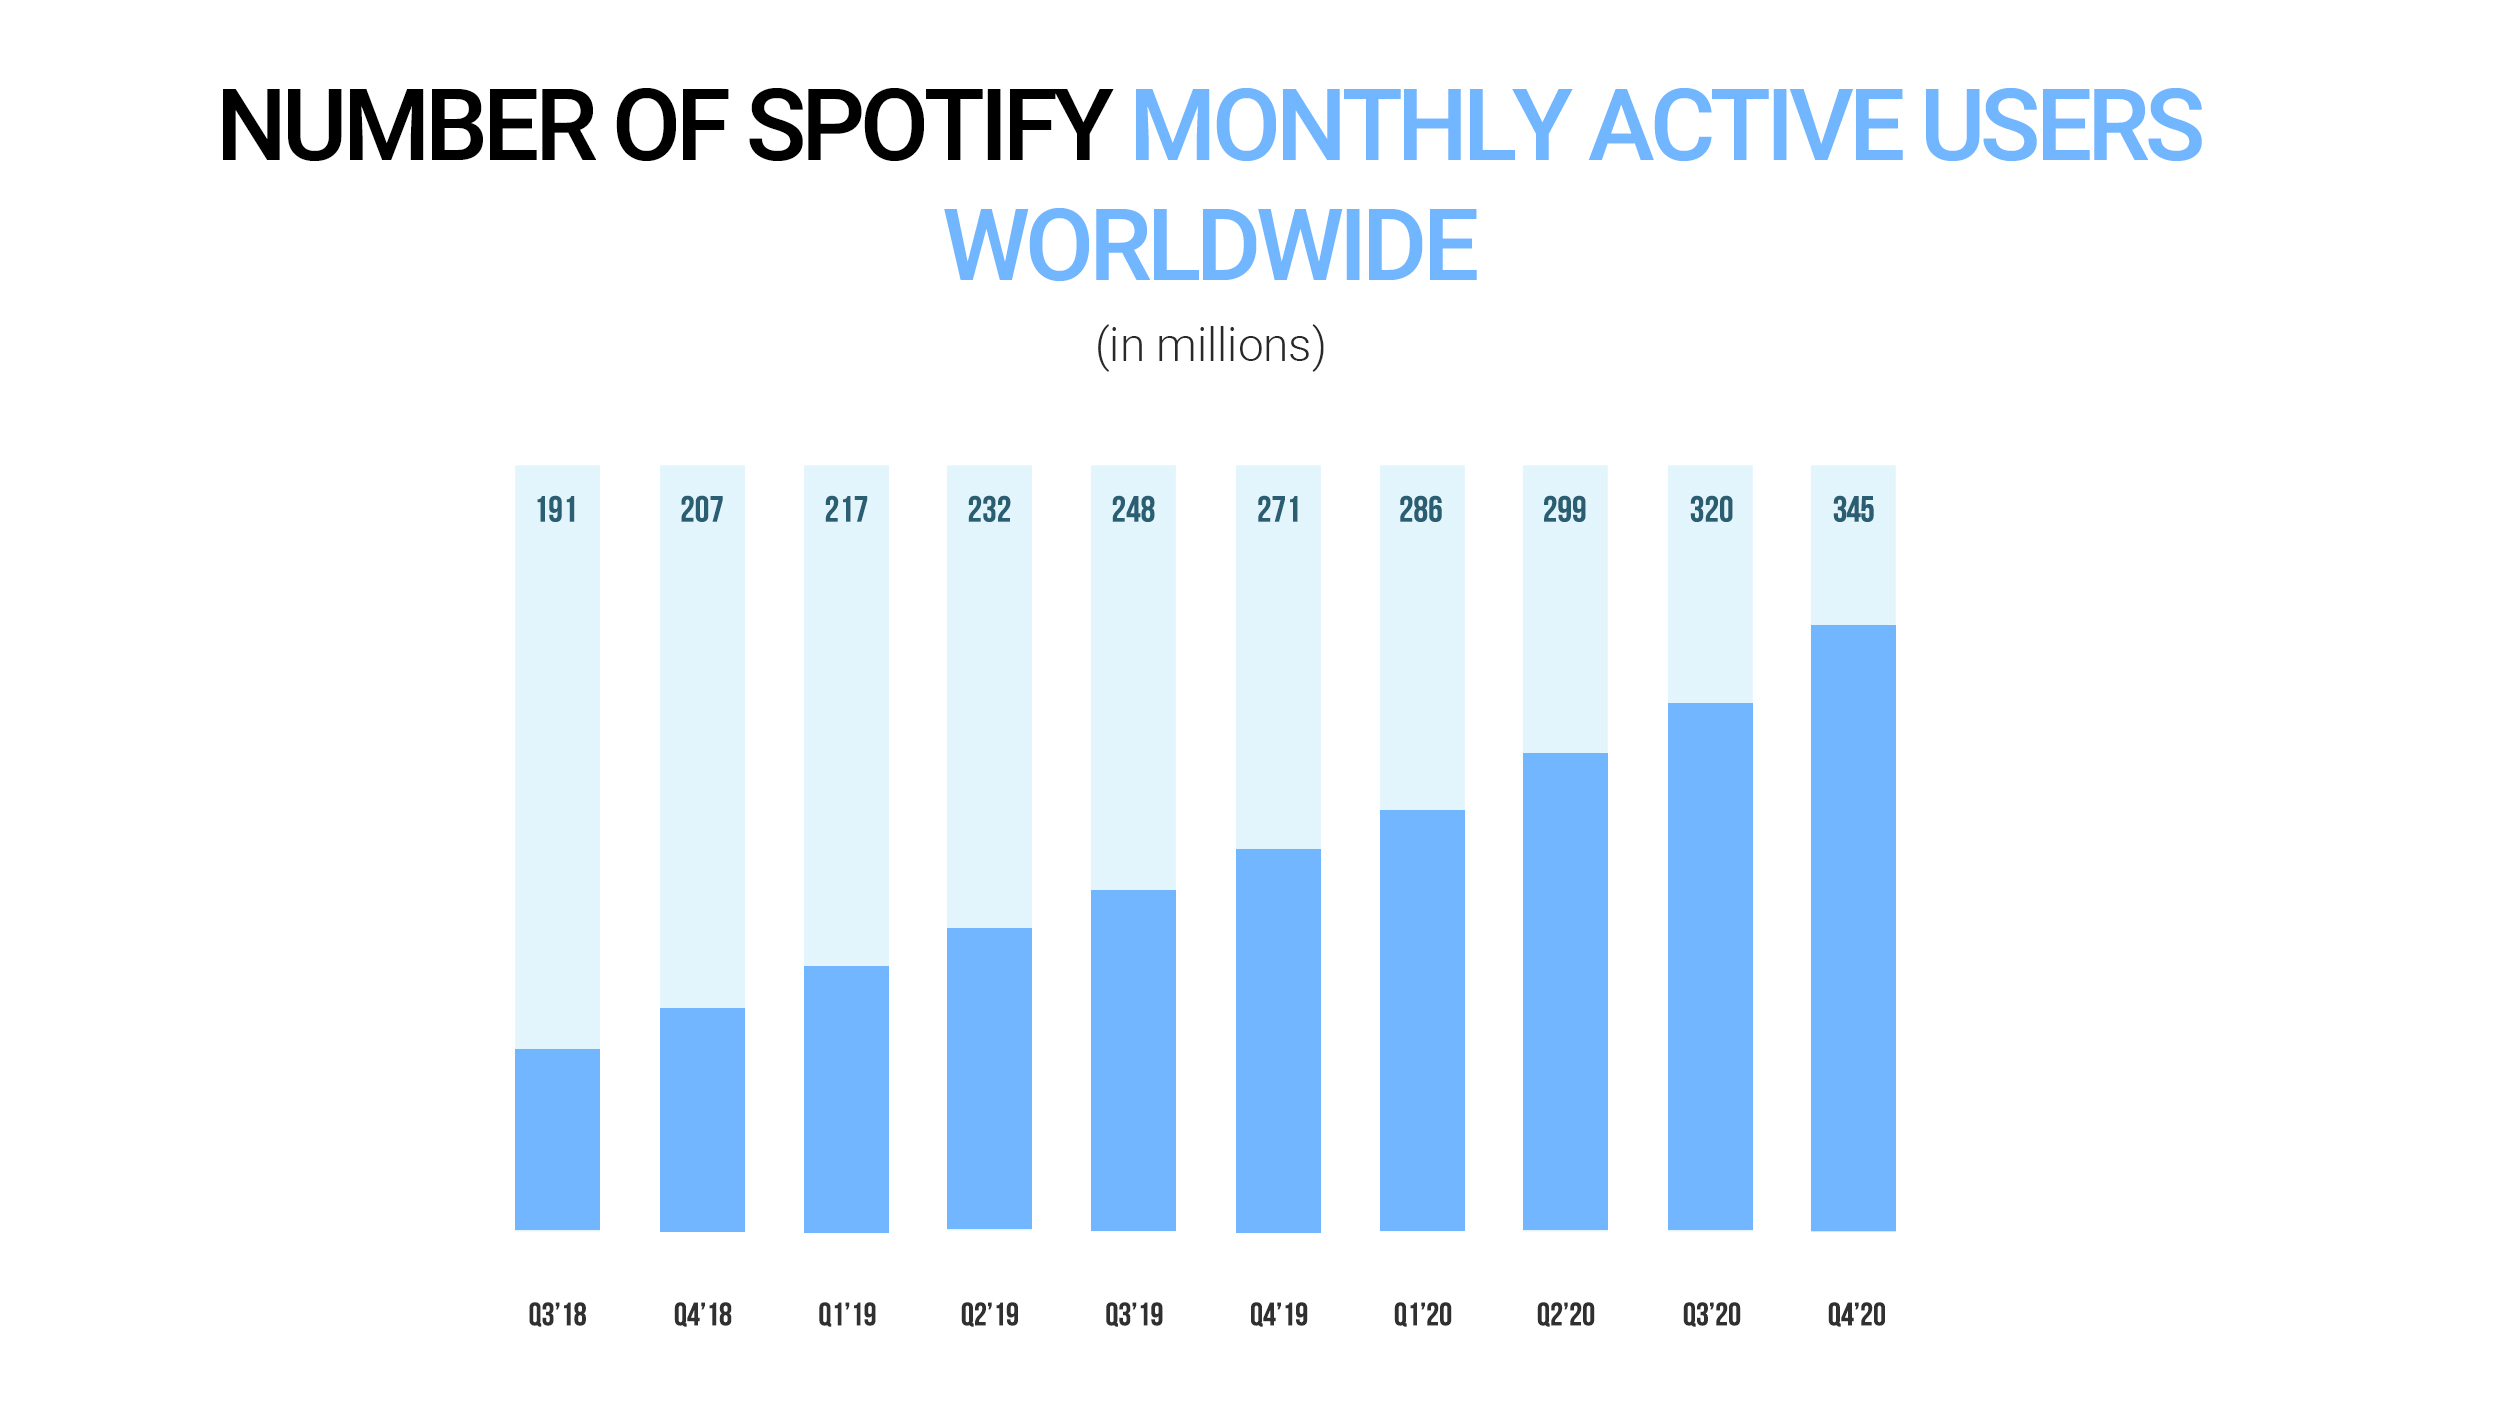 Number of Spotify monthly active users worldwide